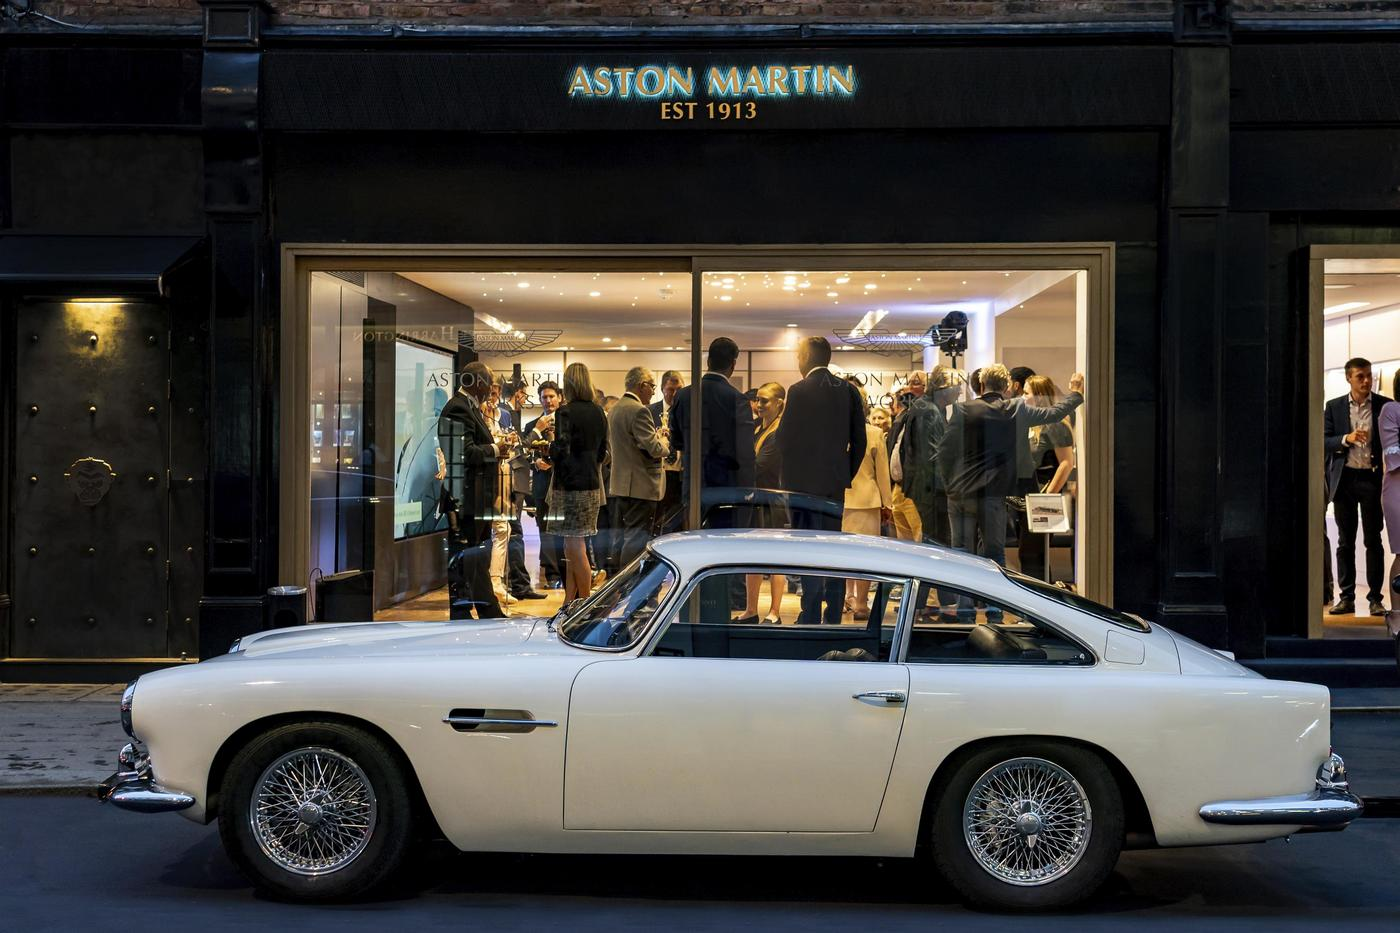 Aston Martin has opened a showroom in London dedicated to classic cars